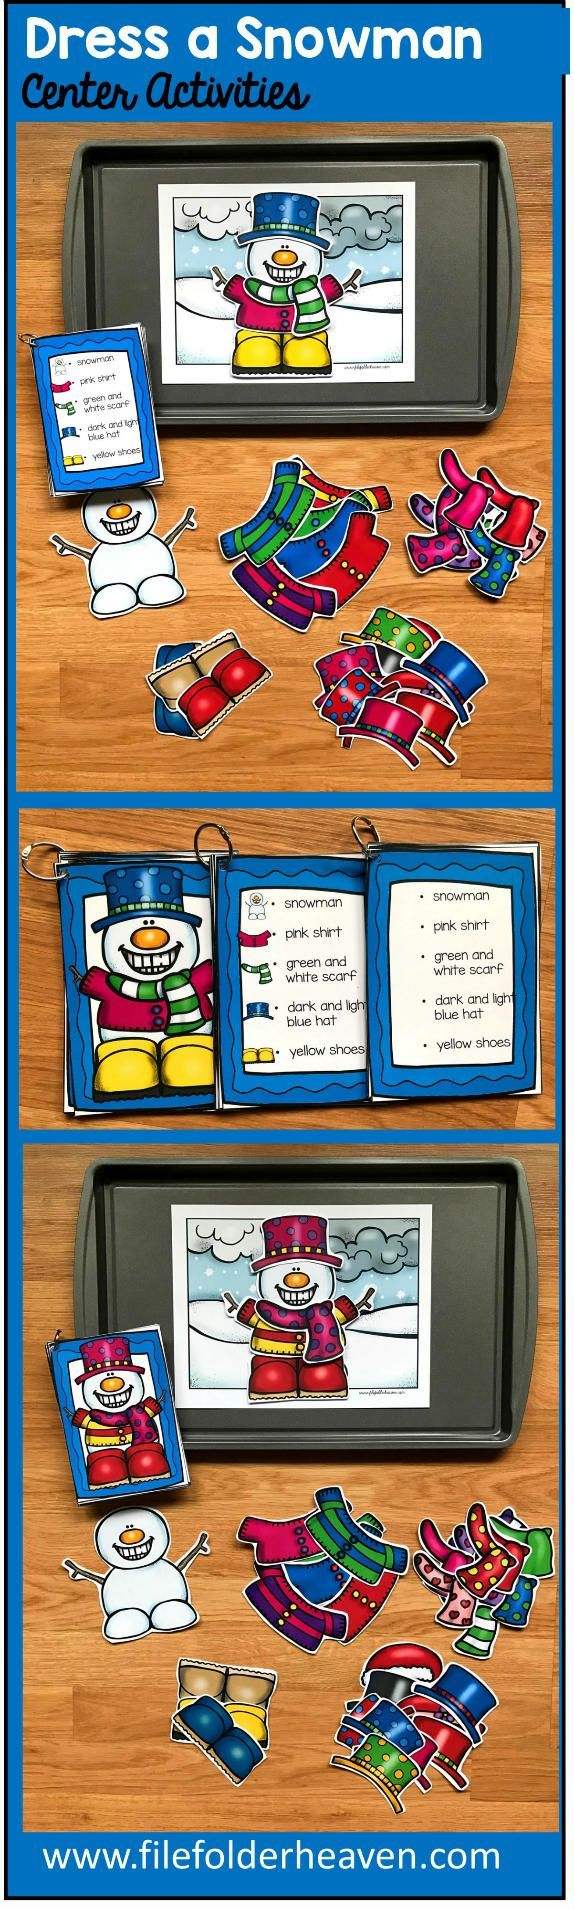 The Dress A Snowman Center Activities, can be set up as cookie sheet activities, a magnet center or completed as cut and glue activities. This activity includes: 1 background, penguin building pieces, and three sets of building cards for differentiation. Students can build 16 different snowmen by looking a picture cards (level 1), using the cards with words and pictures (level 2), or using the cards with just words (level 3).